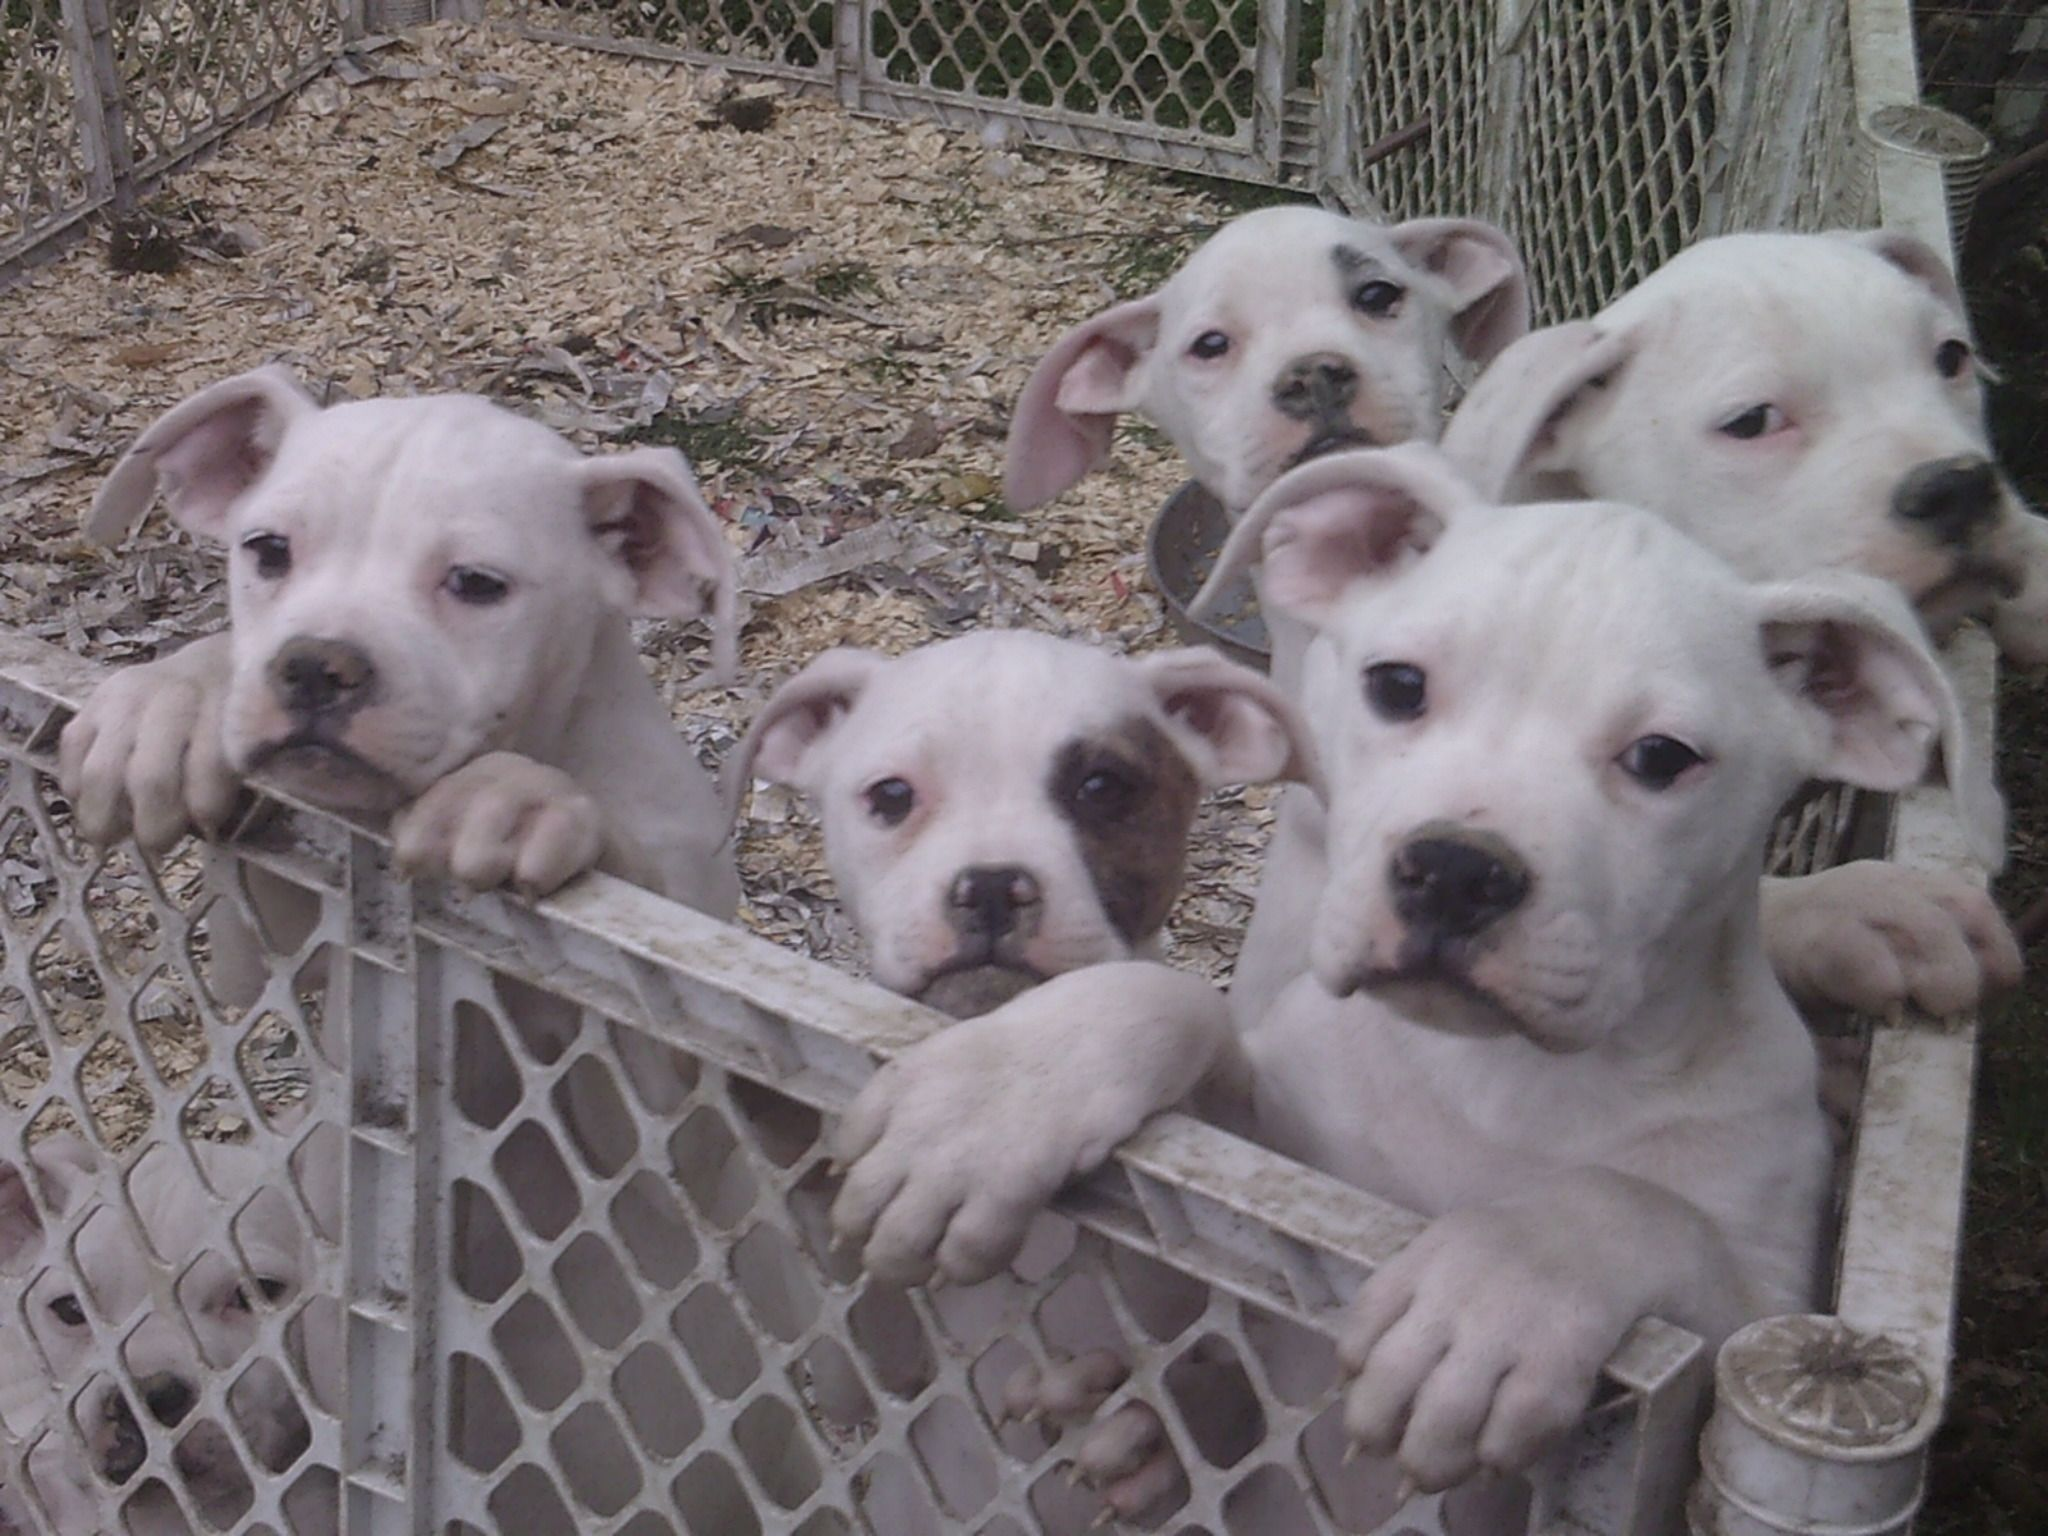 Johnson American Bulldog Pups At 4 Months Old Dalmatian Puppies For Sale Puppies American Bulldog Puppies